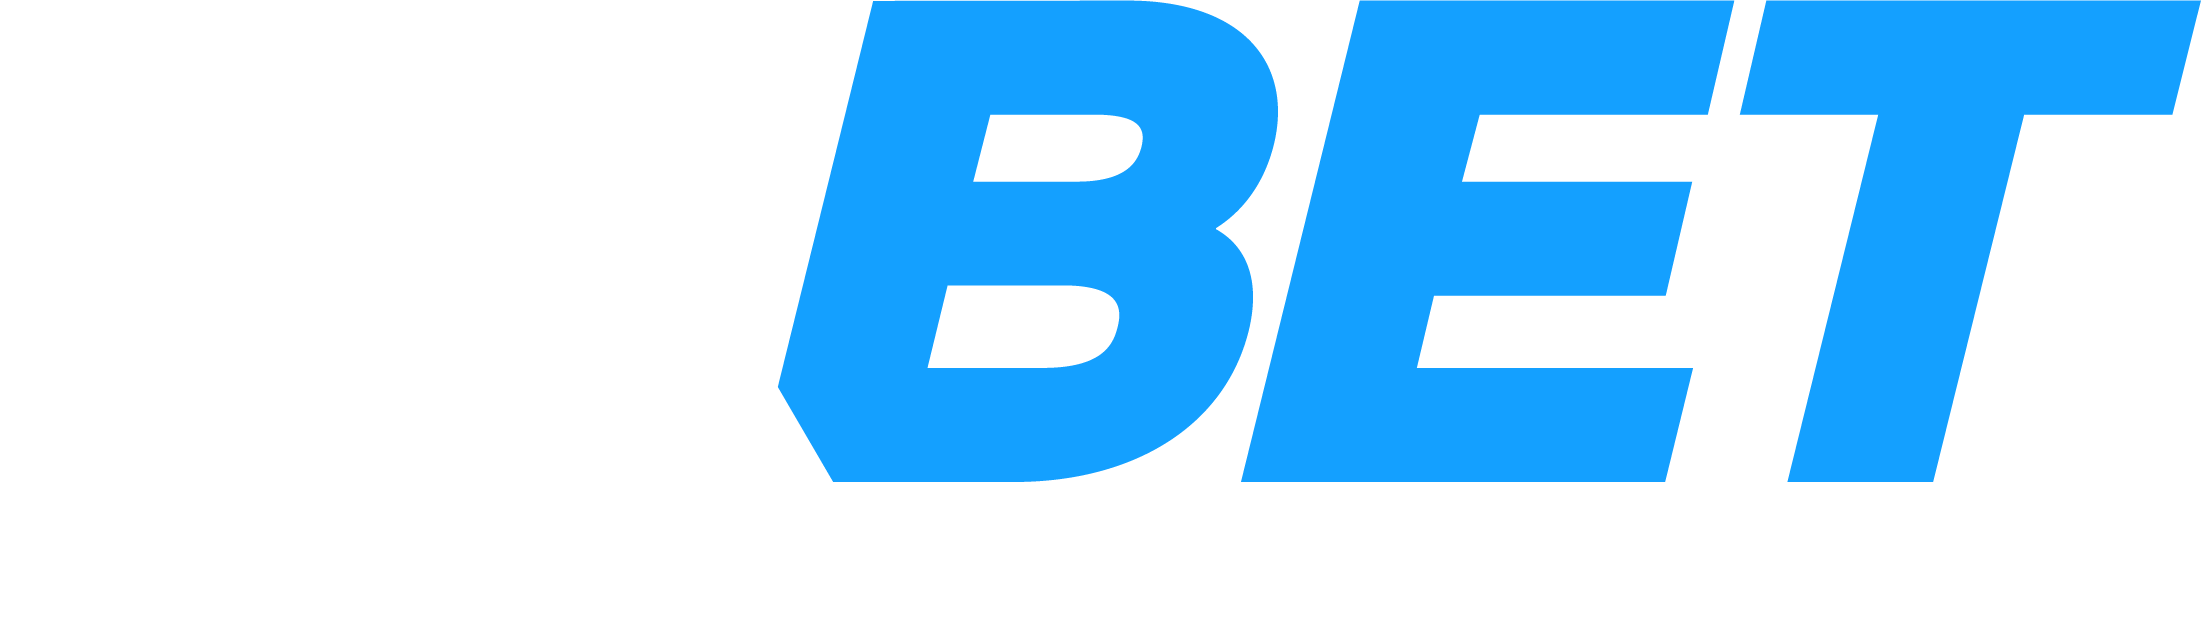 WORKING LINK FOR 1XBET